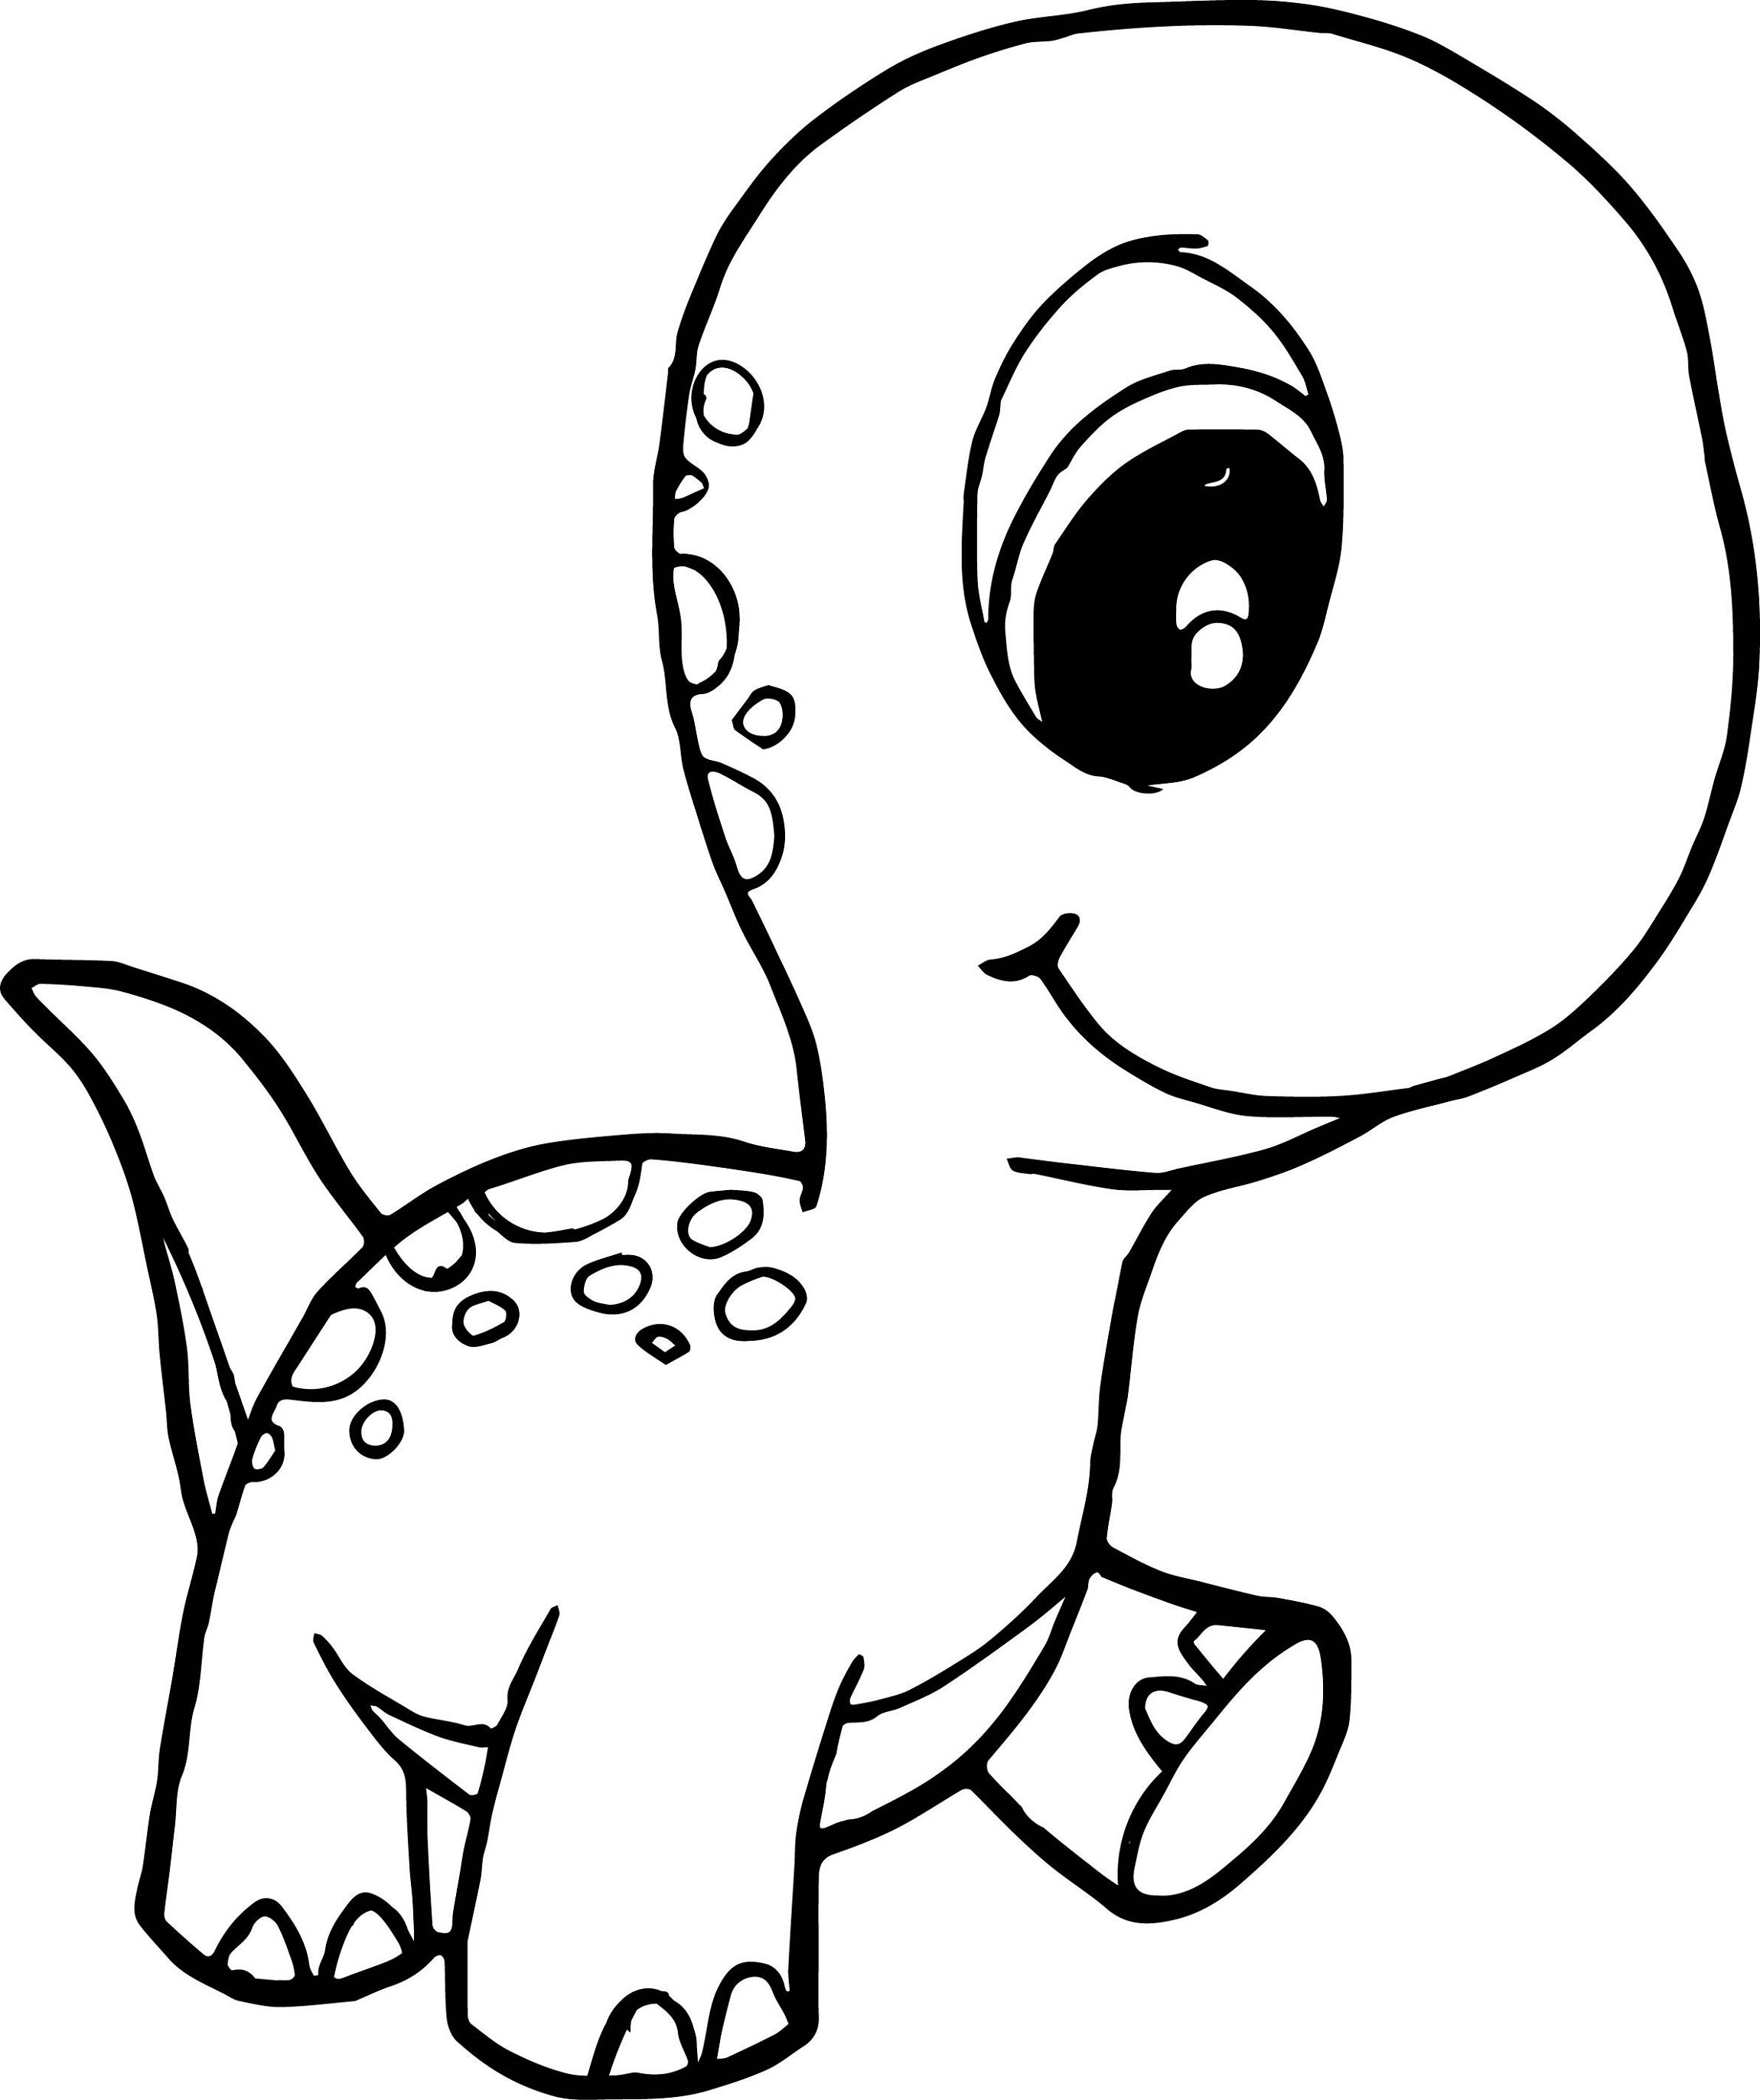 Baby Dinosaur Coloring Pages for Preschoolers Cute